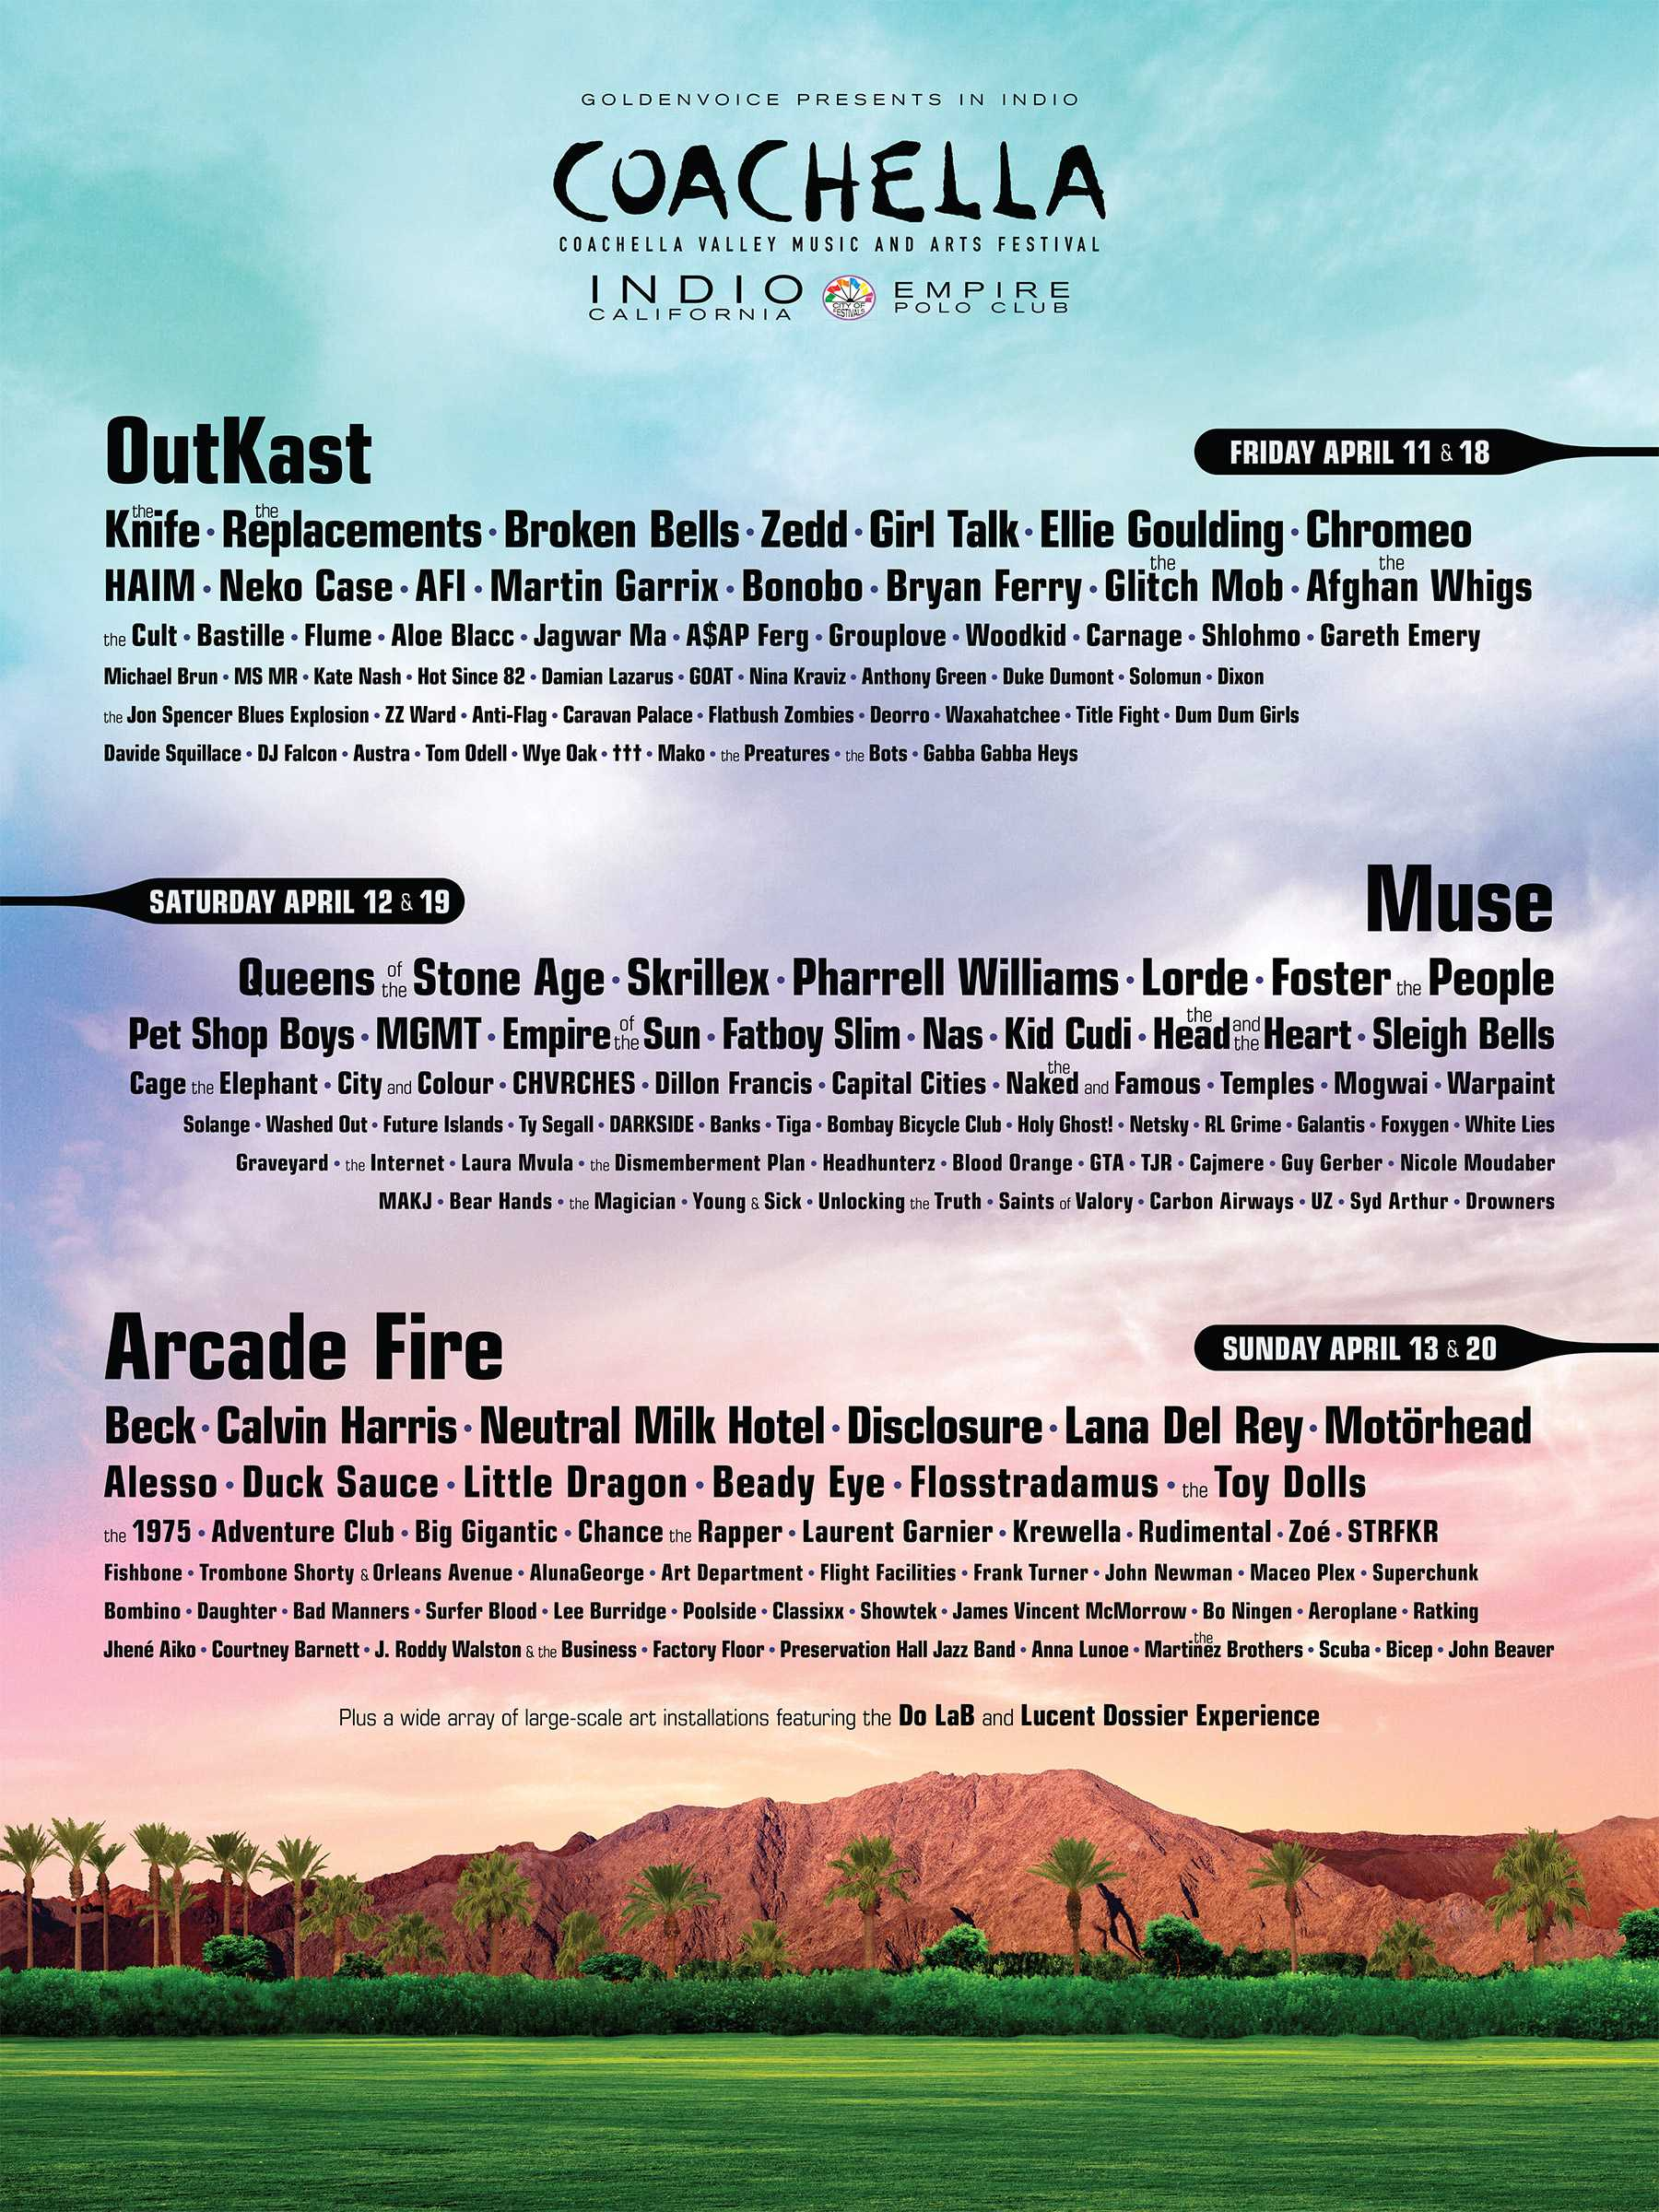 It's Time To Plan Your Pilgrimage To The California Desert For Coachella 2014